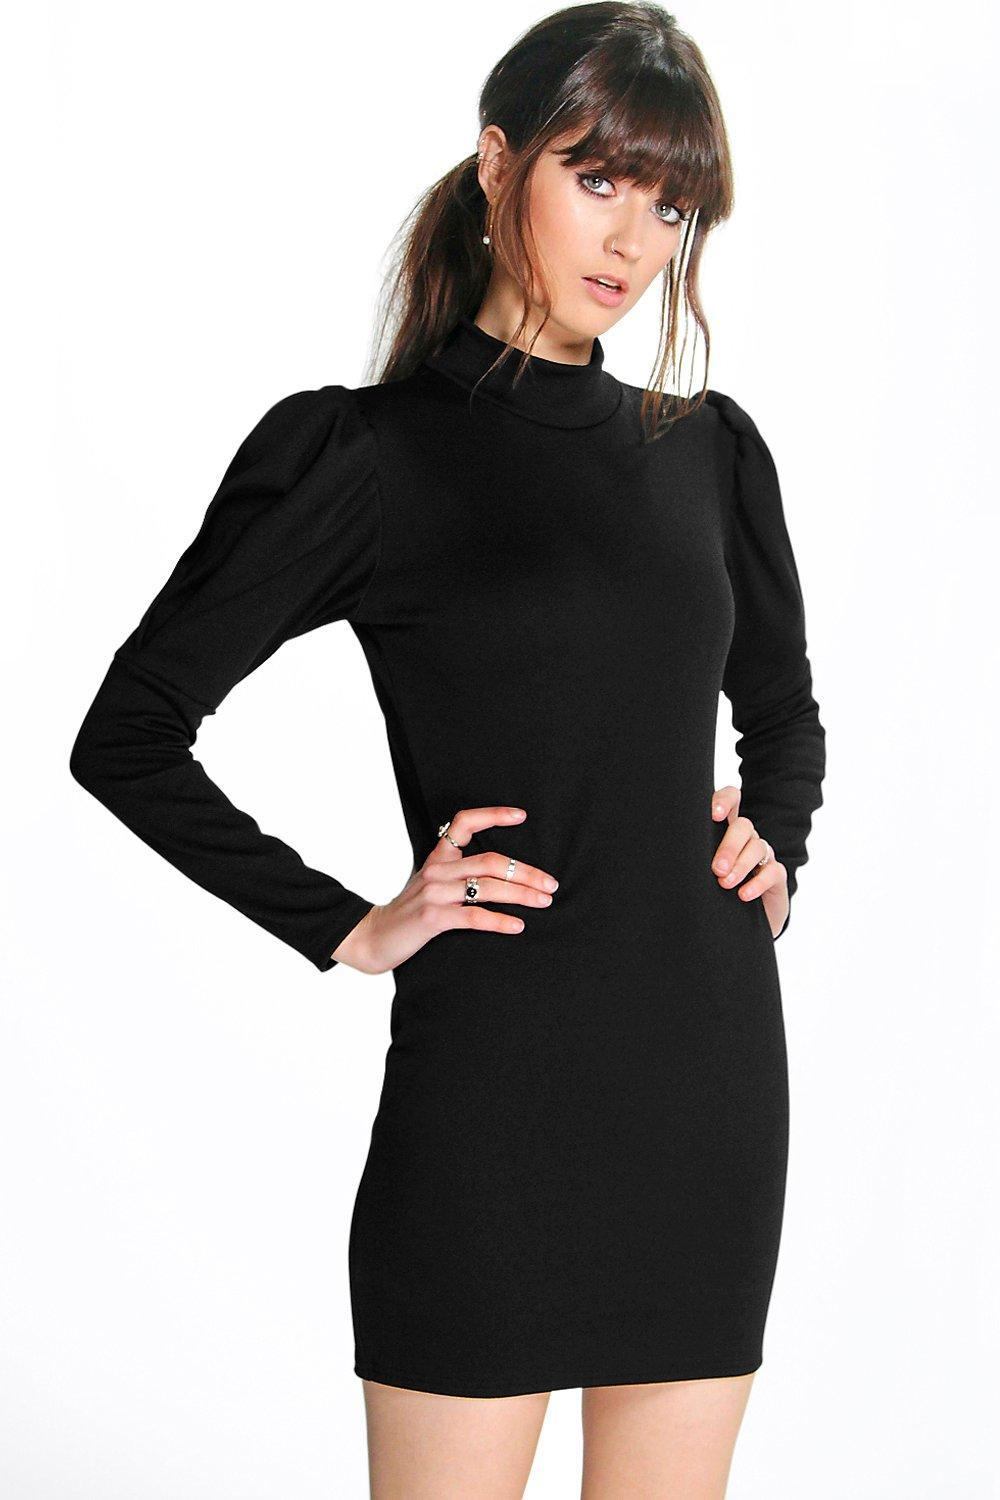 Puff Sleeve High Neck Bodycon Dress Poppy - length: mid thigh; fit: tight; pattern: plain; style: bodycon; neckline: roll neck; hip detail: fitted at hip; predominant colour: black; occasions: evening; fibres: polyester/polyamide - stretch; sleeve length: long sleeve; sleeve style: standard; texture group: jersey - clingy; pattern type: fabric; season: a/w 2015